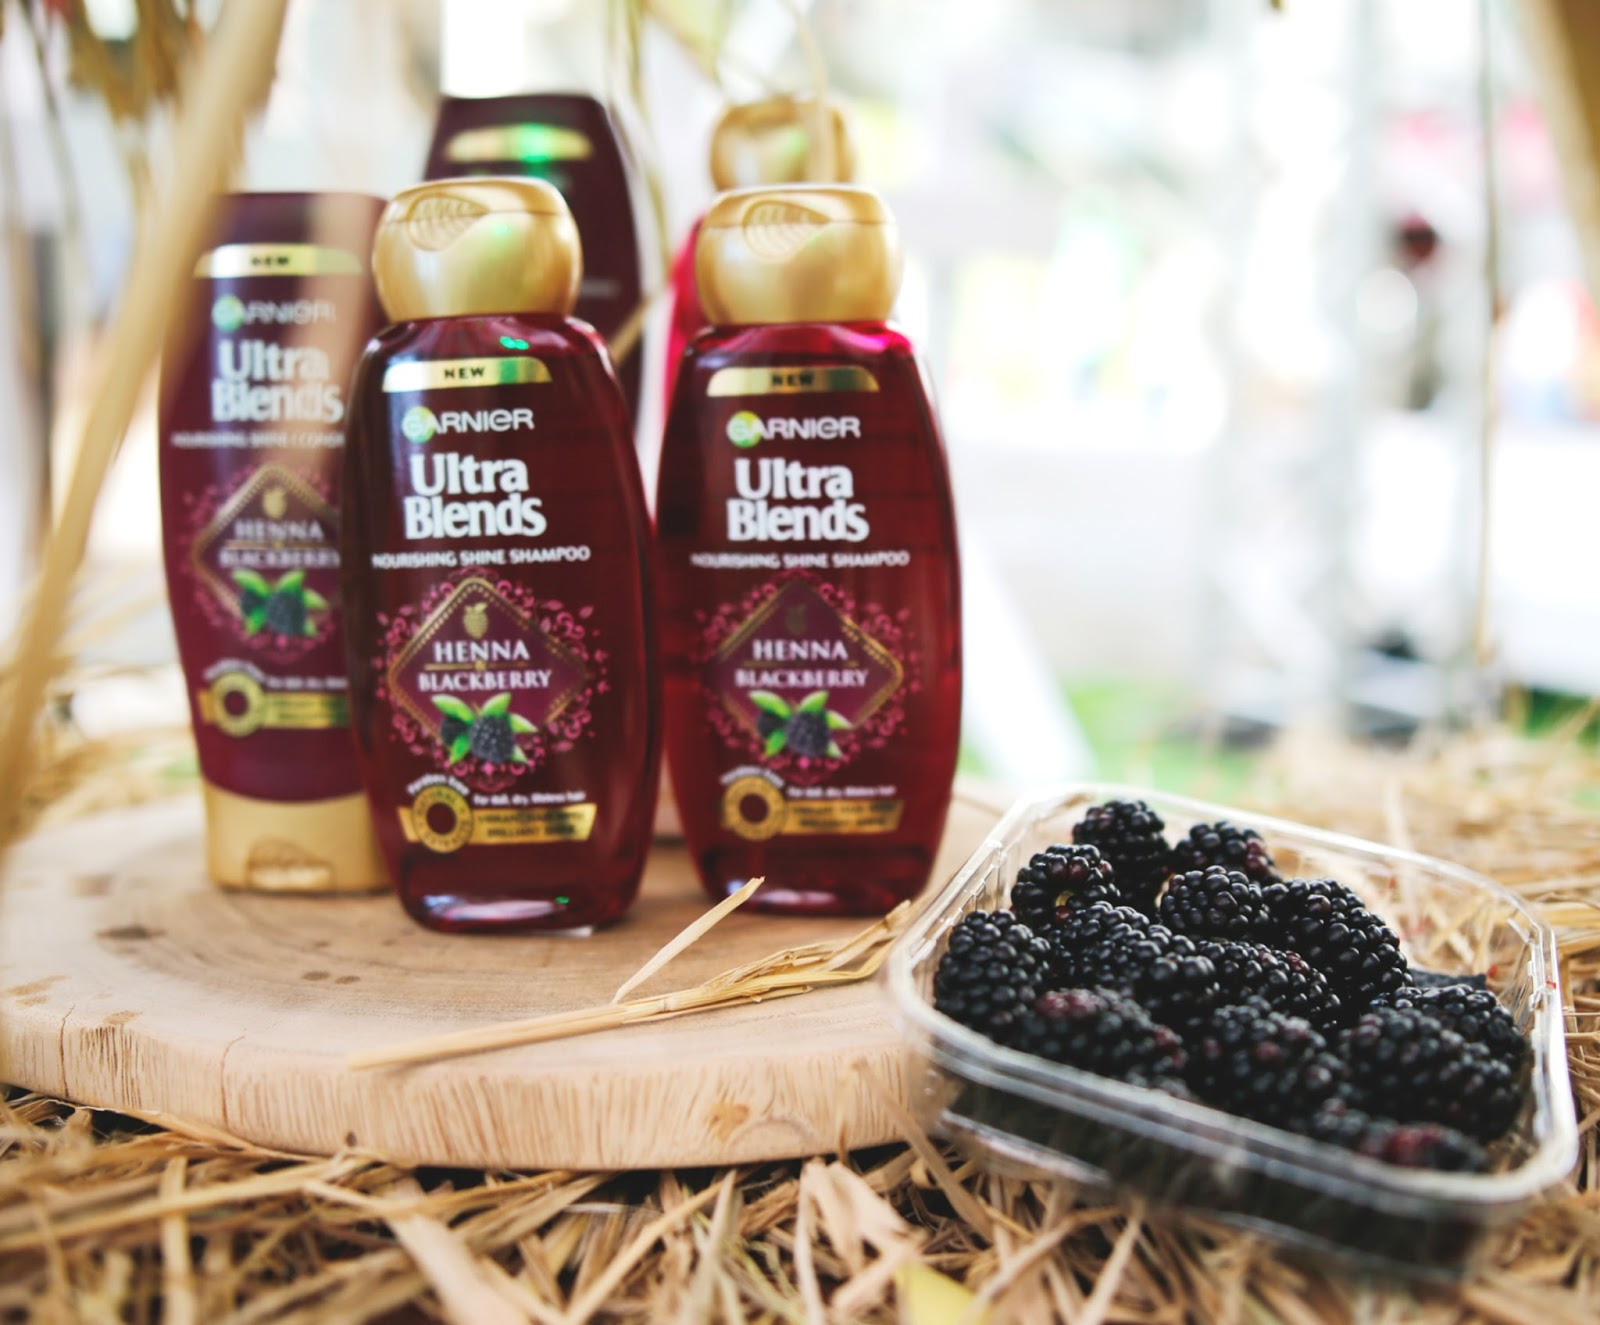 Garnier Ultra Blends henna and blackberry Shampoo Review